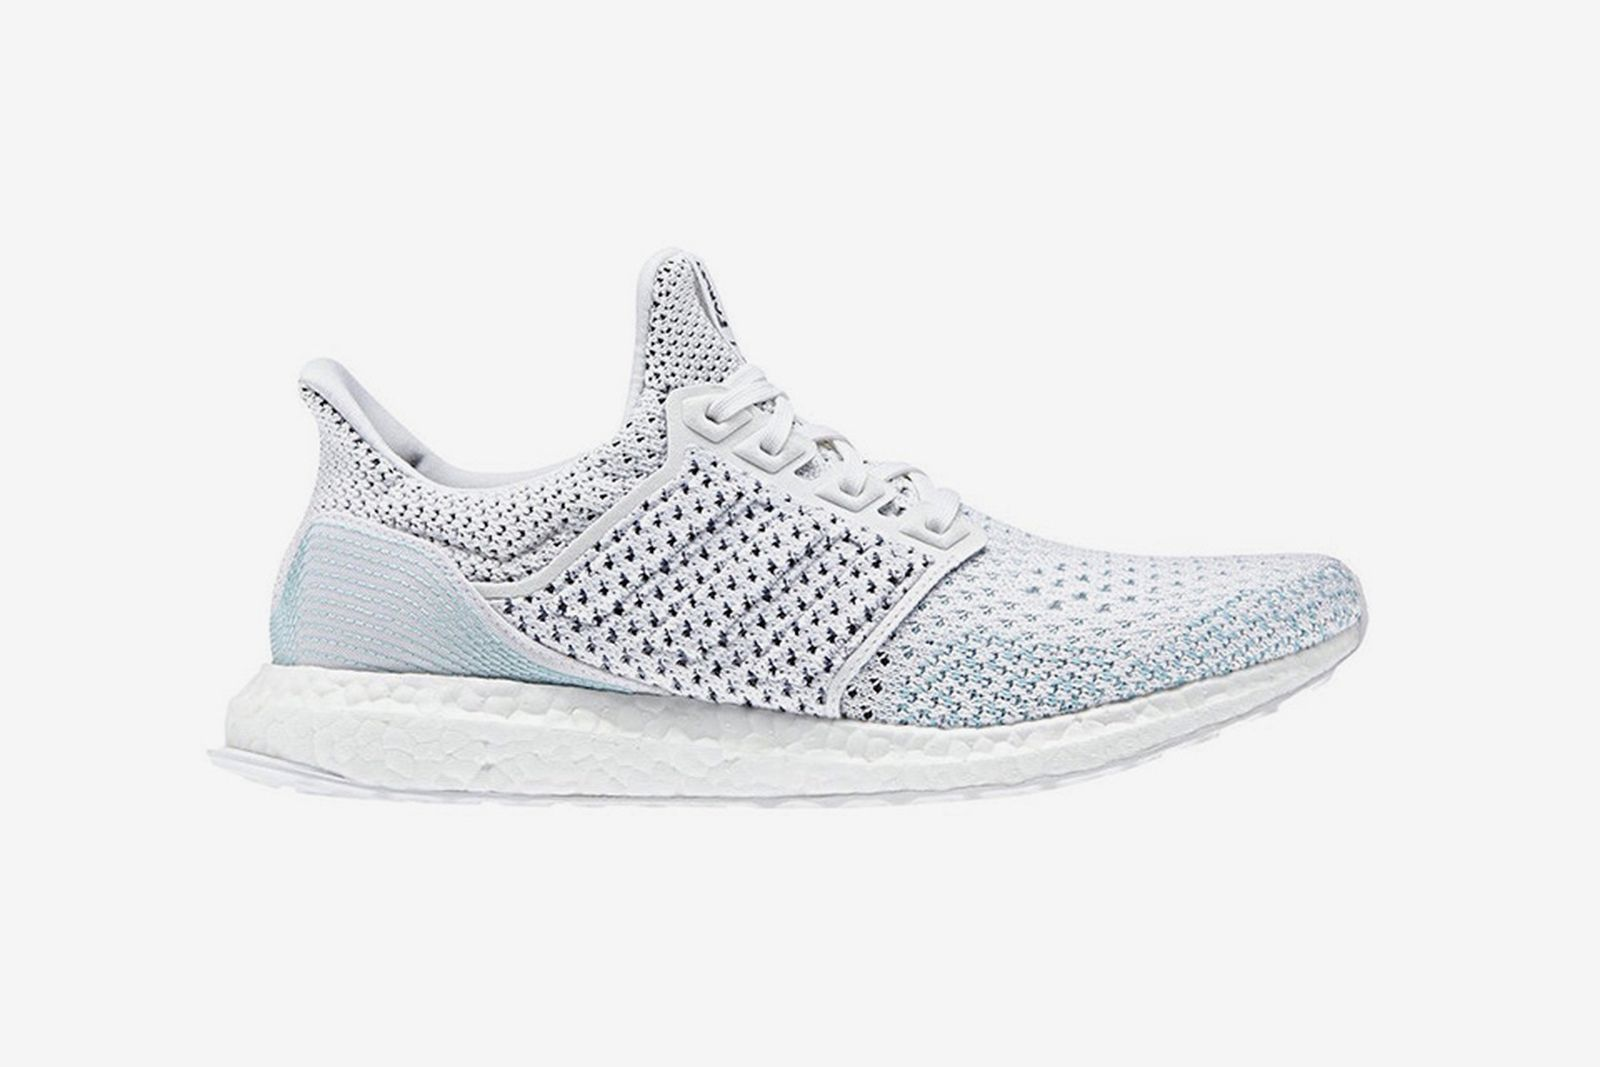 adidas-clima-parley-ultraboost-release-date-price-01